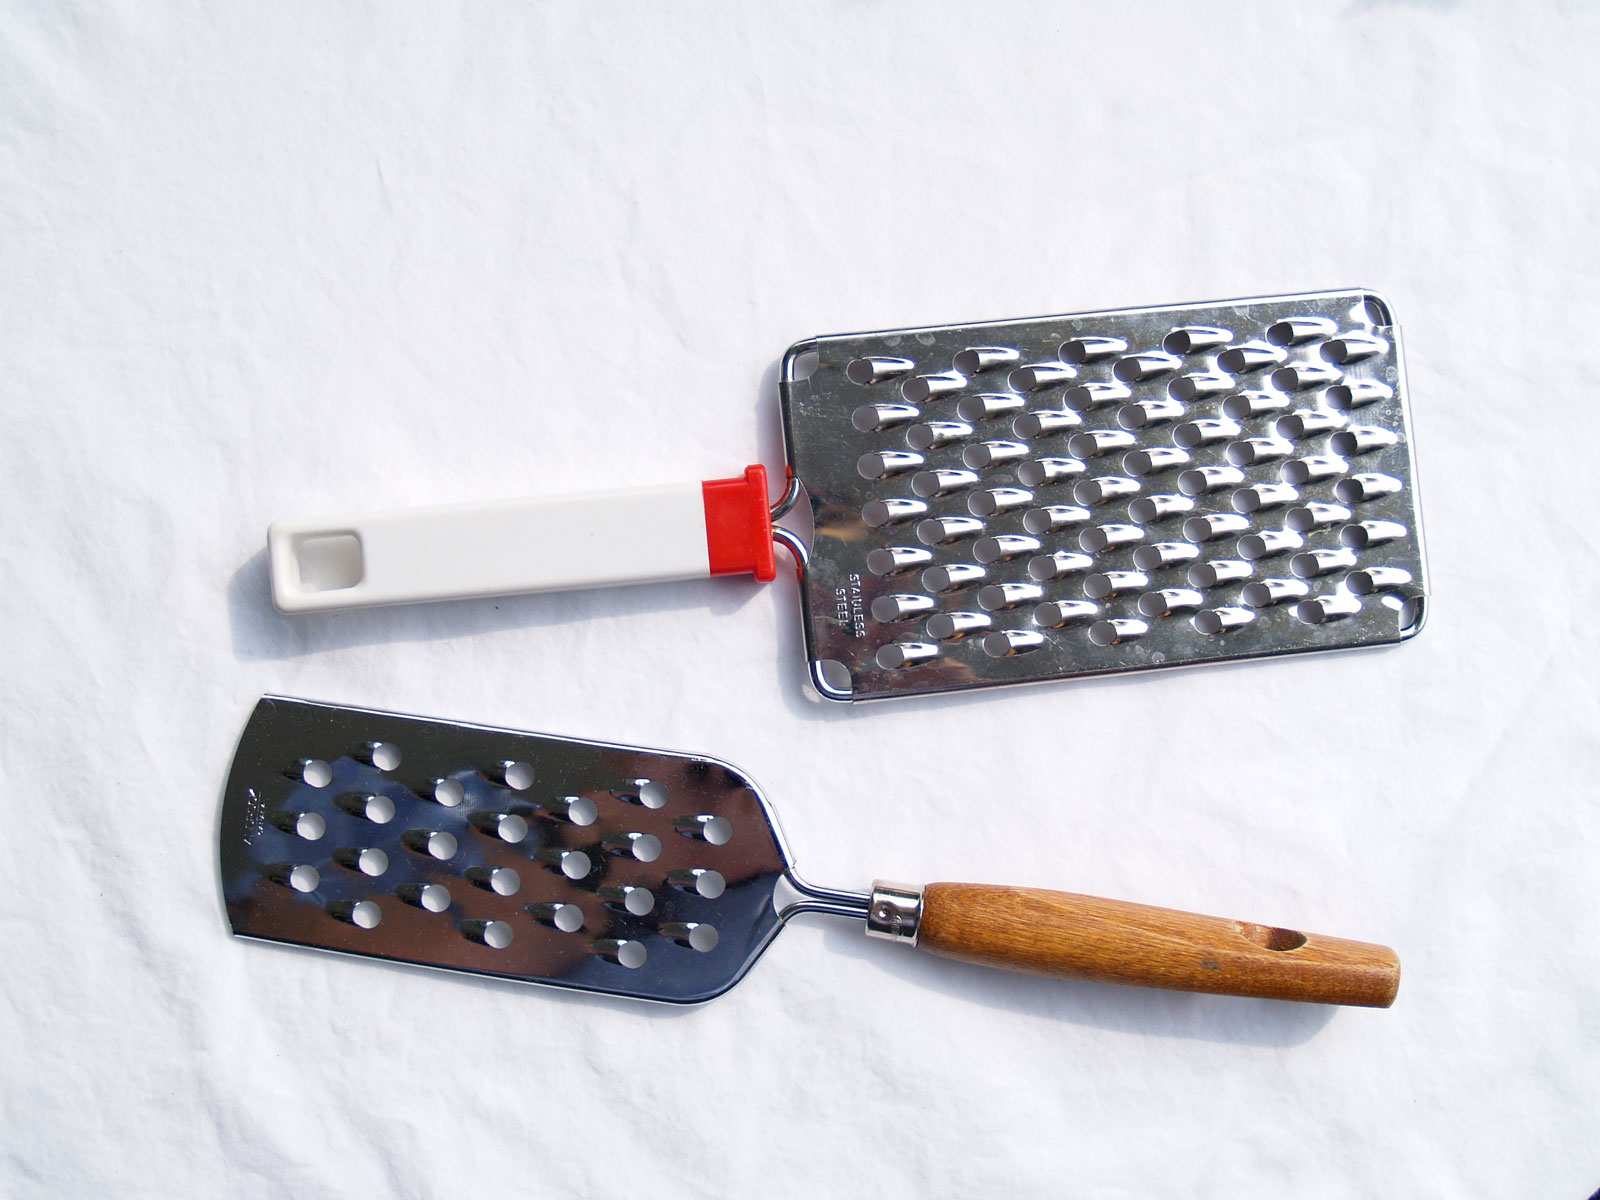 Hand-held flat graters